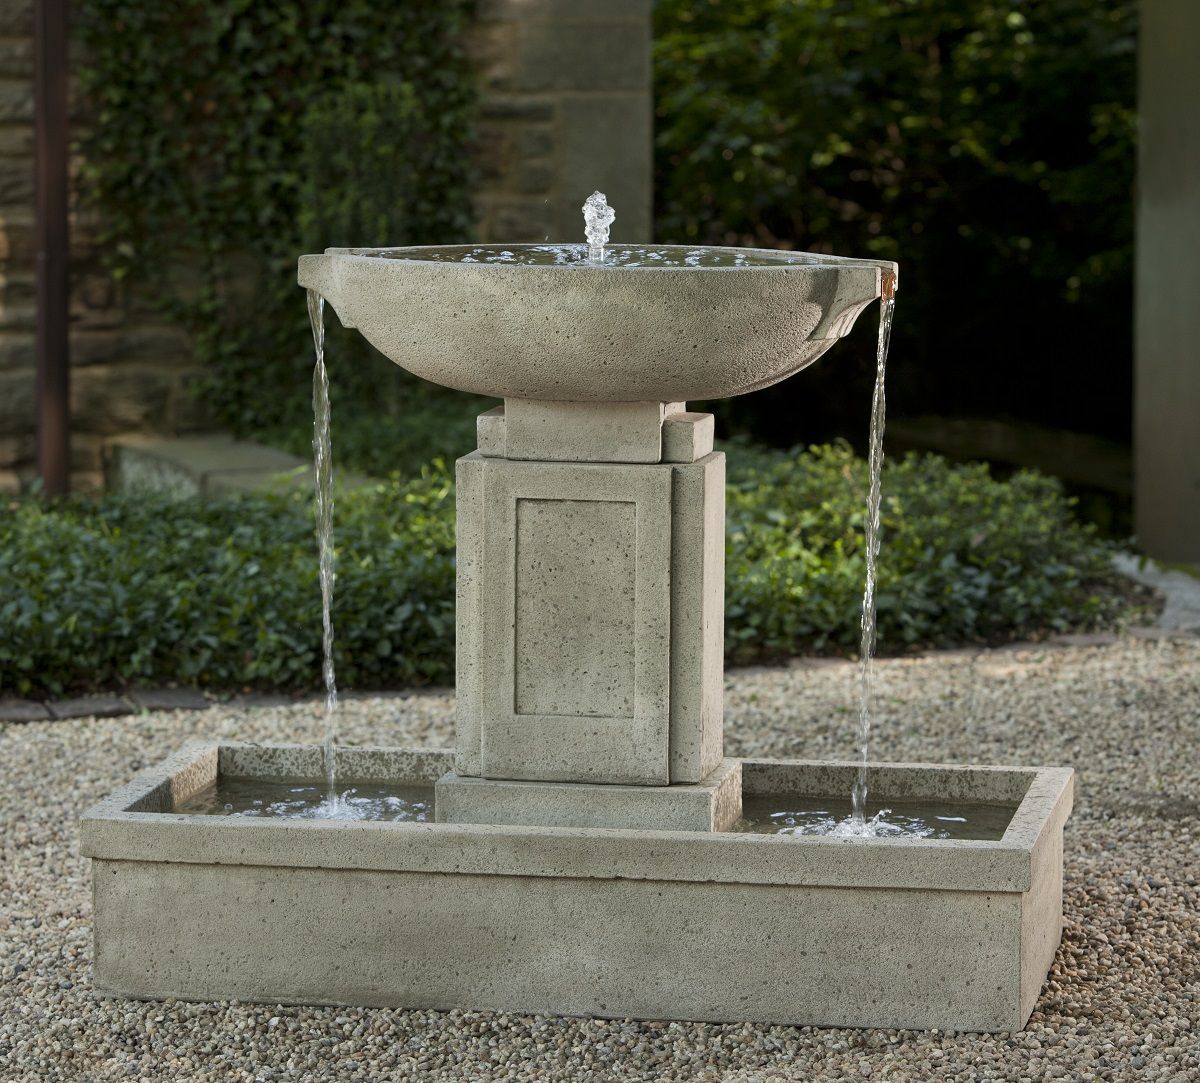 Austin fountain loud cast stone water feature for Backyard water fountains